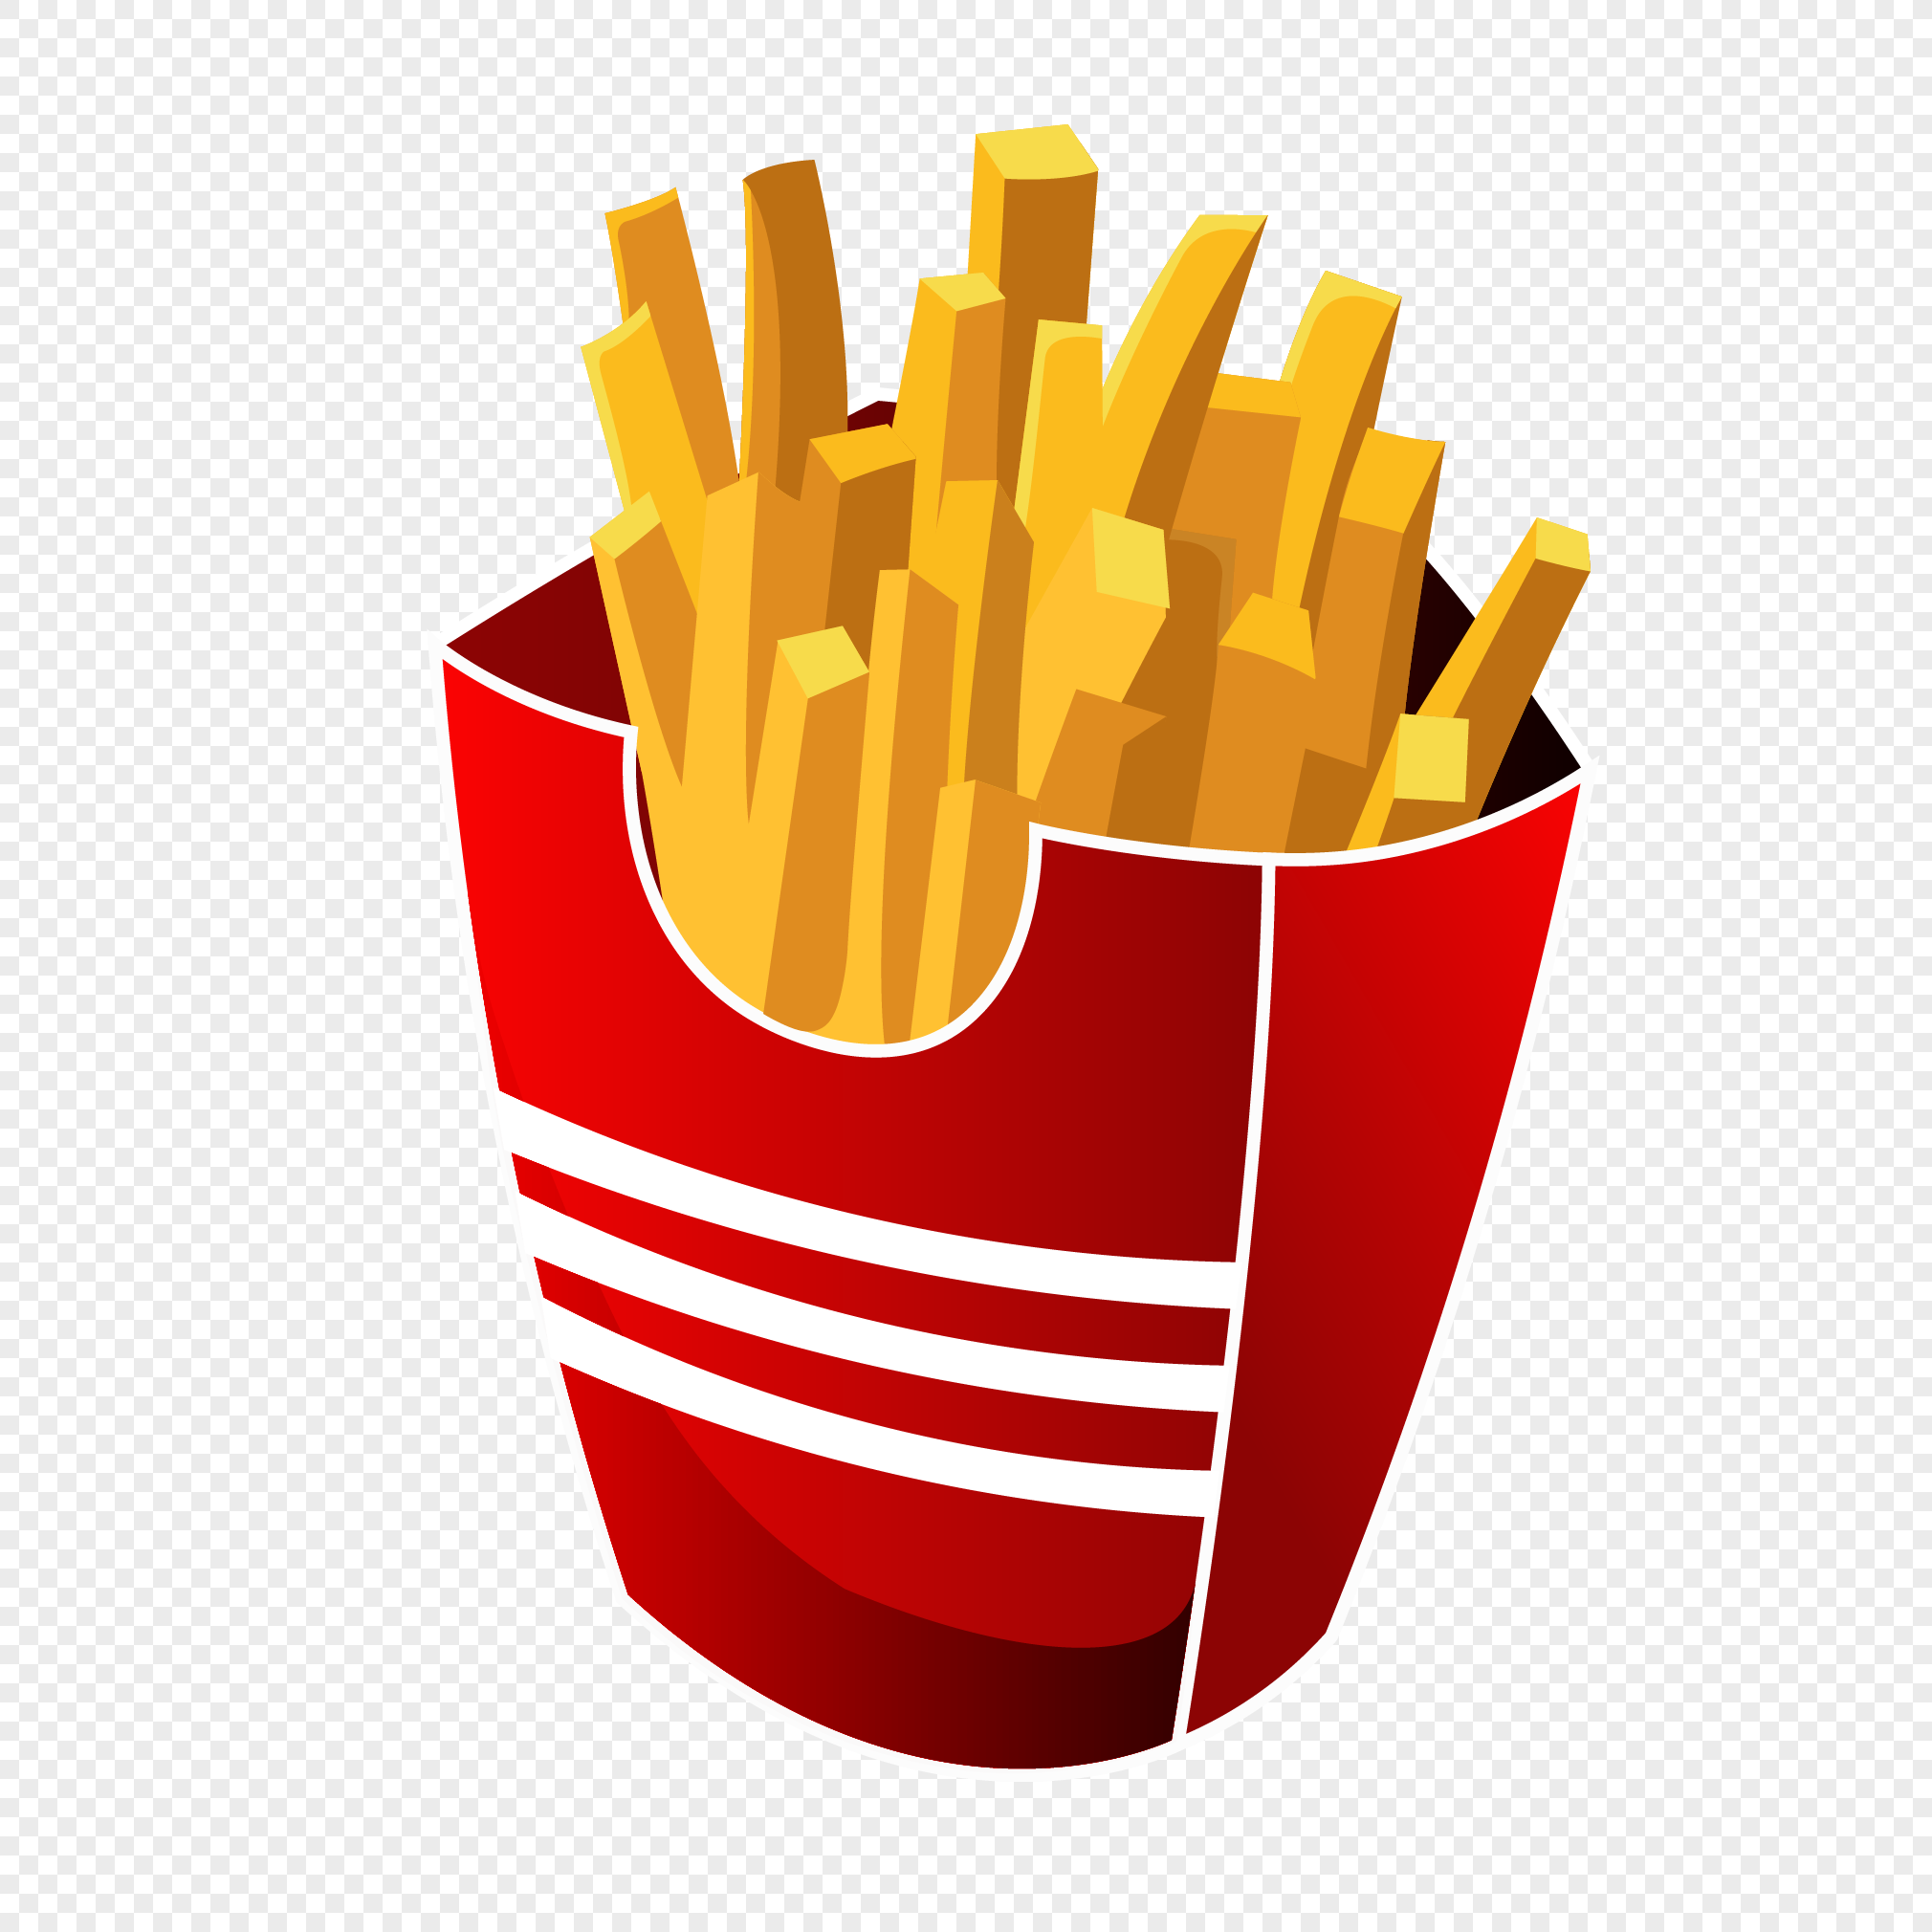 2020x2020 French Fries Vector Png Image Picture Free Download